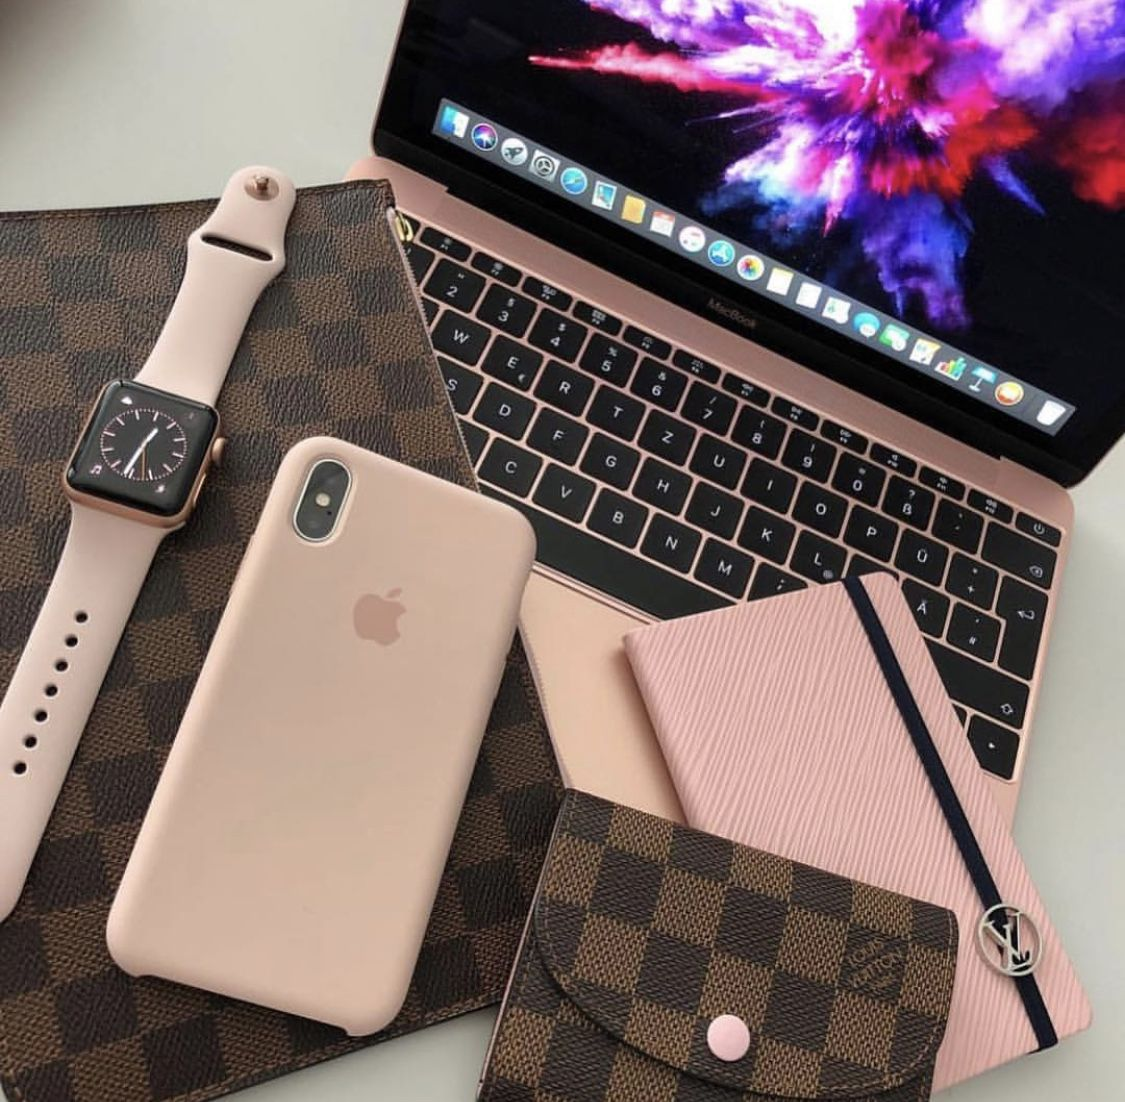 Pin by Lavish Fashions on Accessories Iphone, Apple